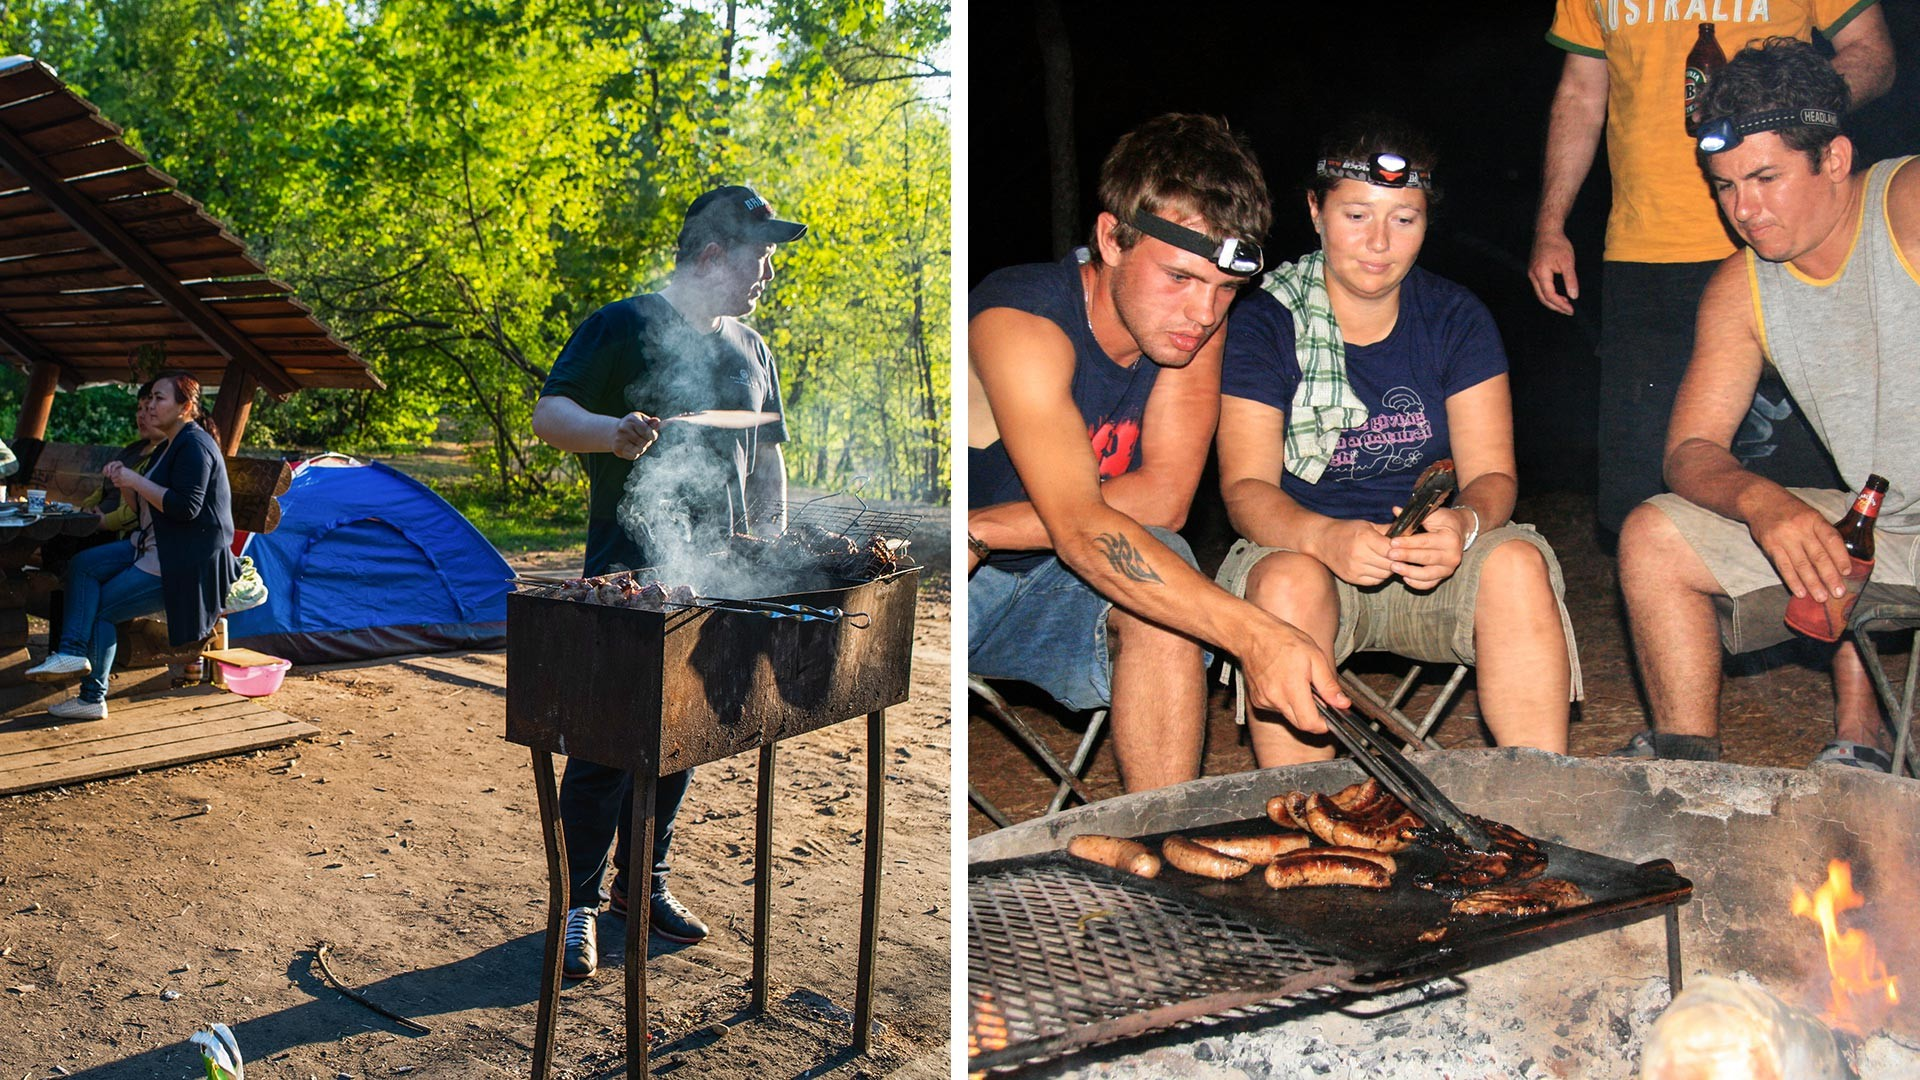 Left: Muscovites make shashlyk at the park. Right: Locals in Australia make a nice BBQ evening.